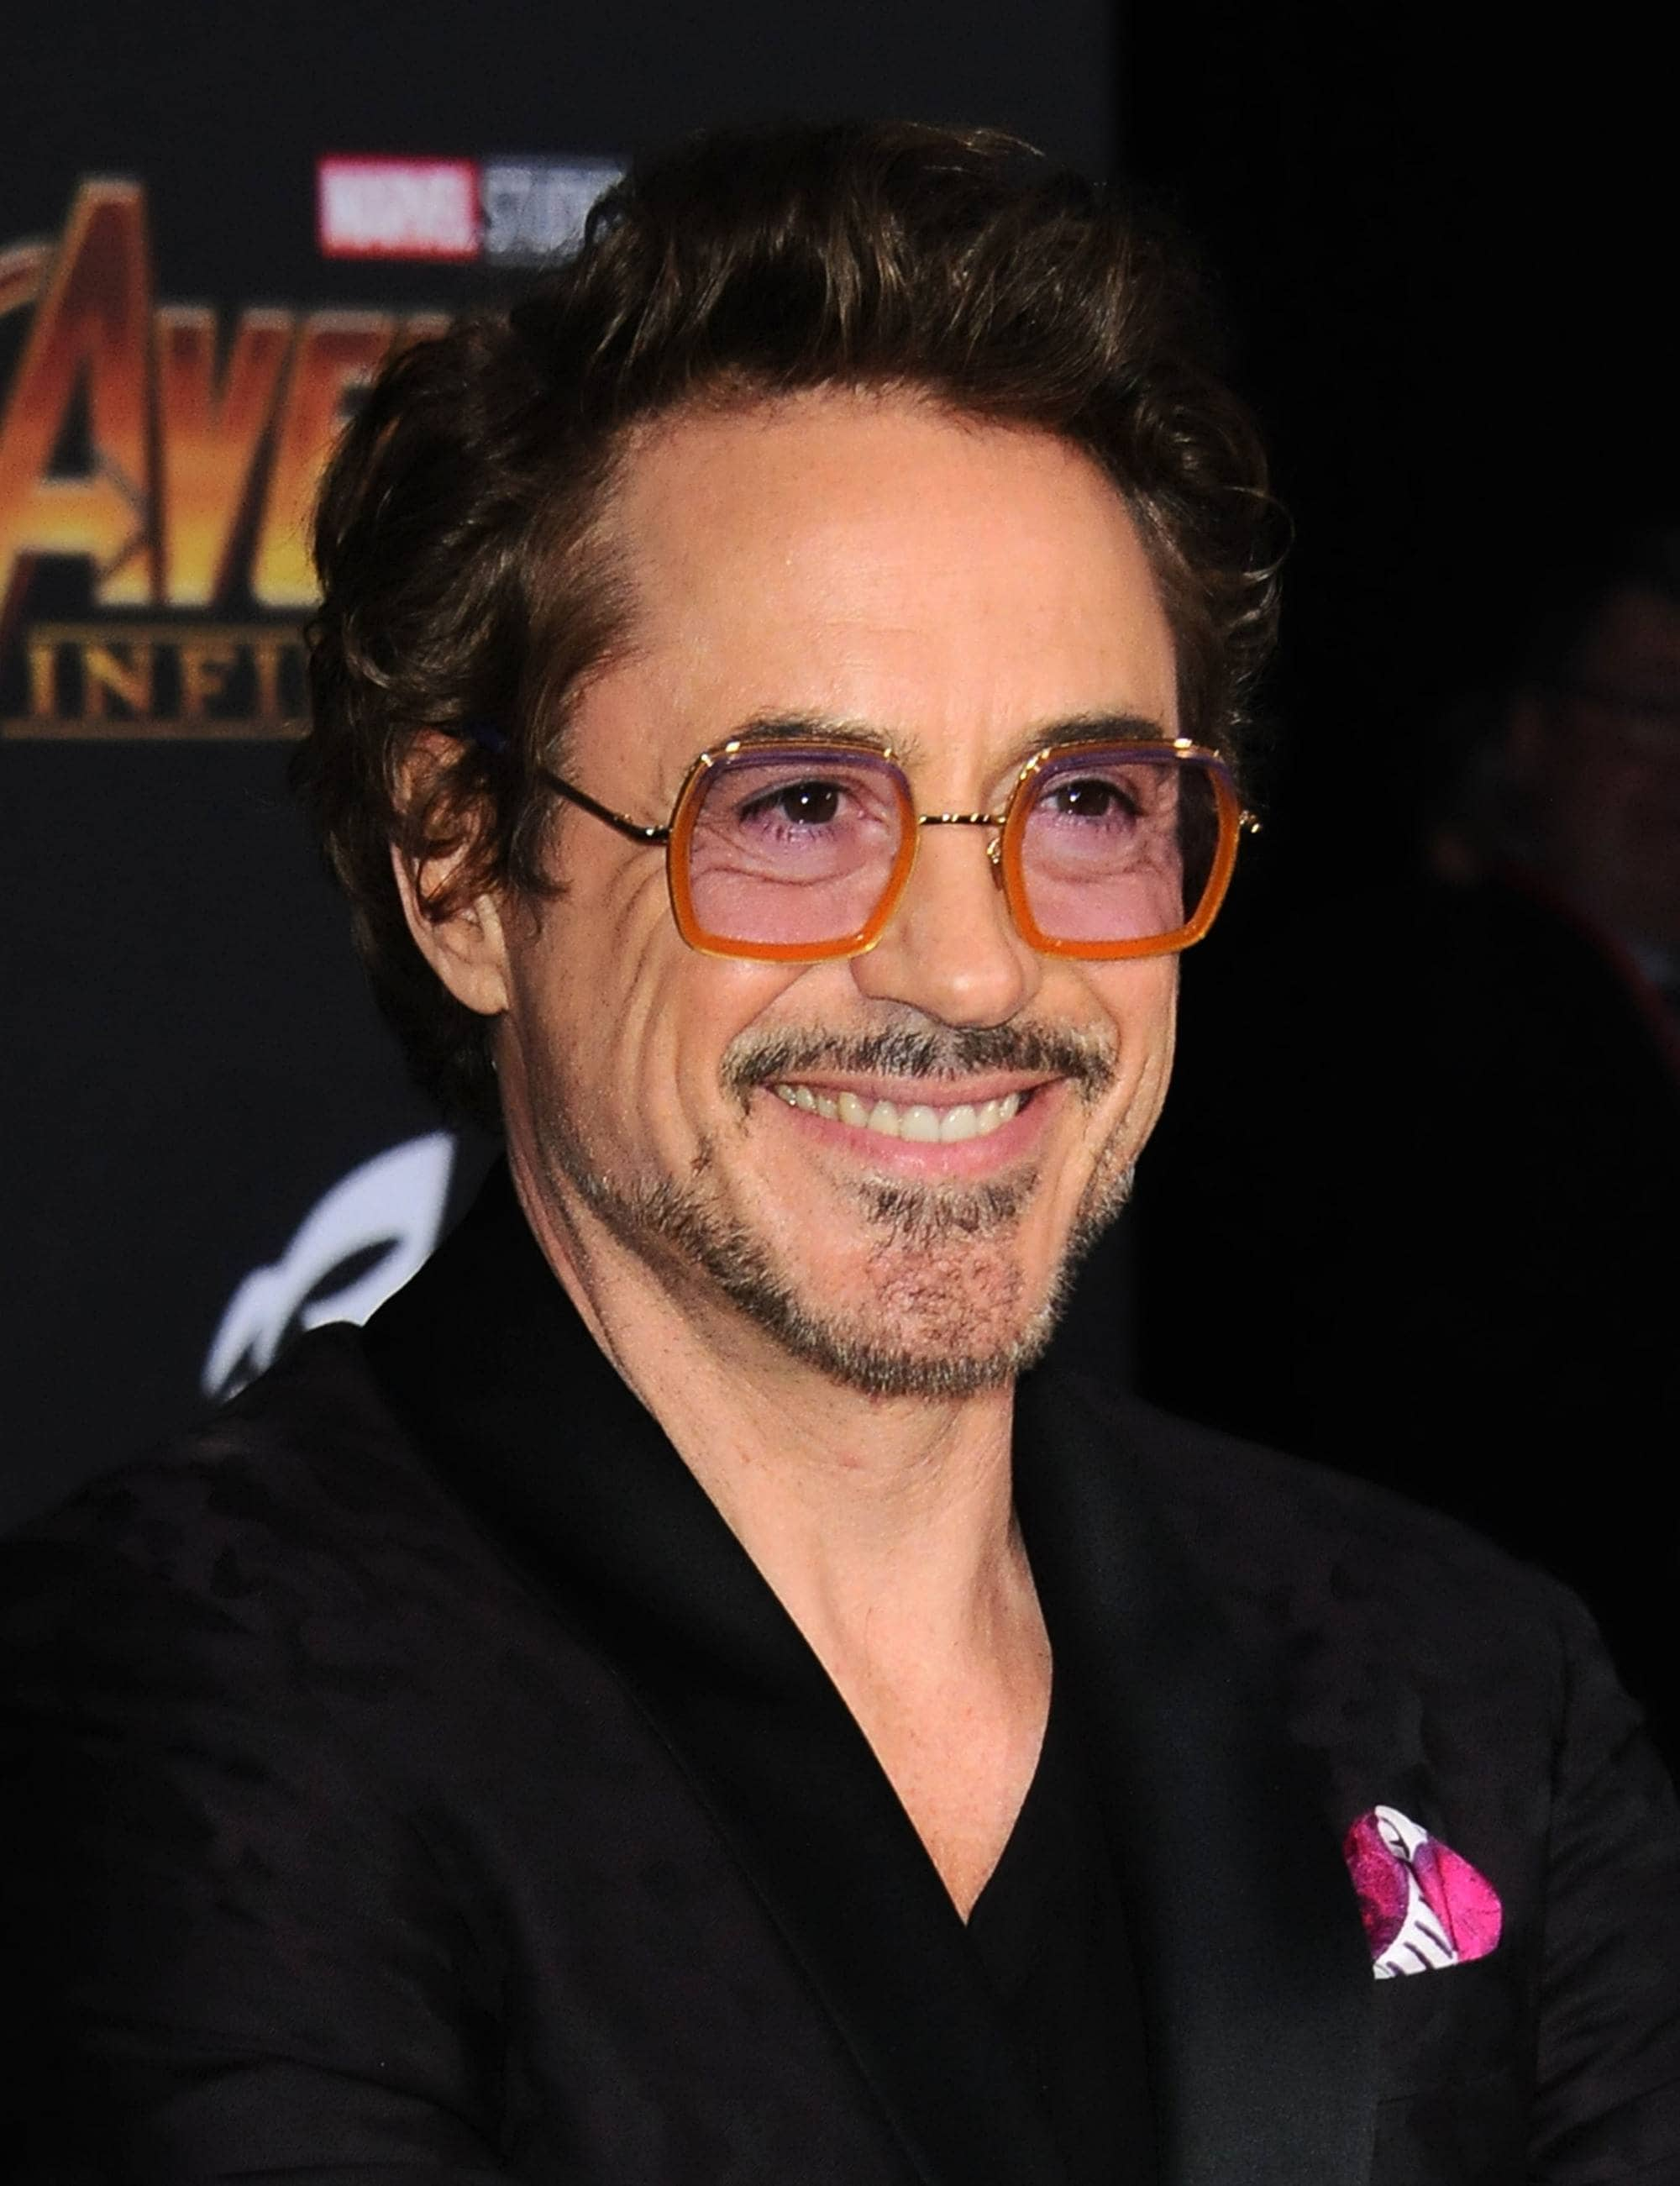 Hairstyles for men over 50: Robert Downey Jr with brown swept back short quiff hair with stubble beard and bold glasses wearing a suit at the Avengers premiere.